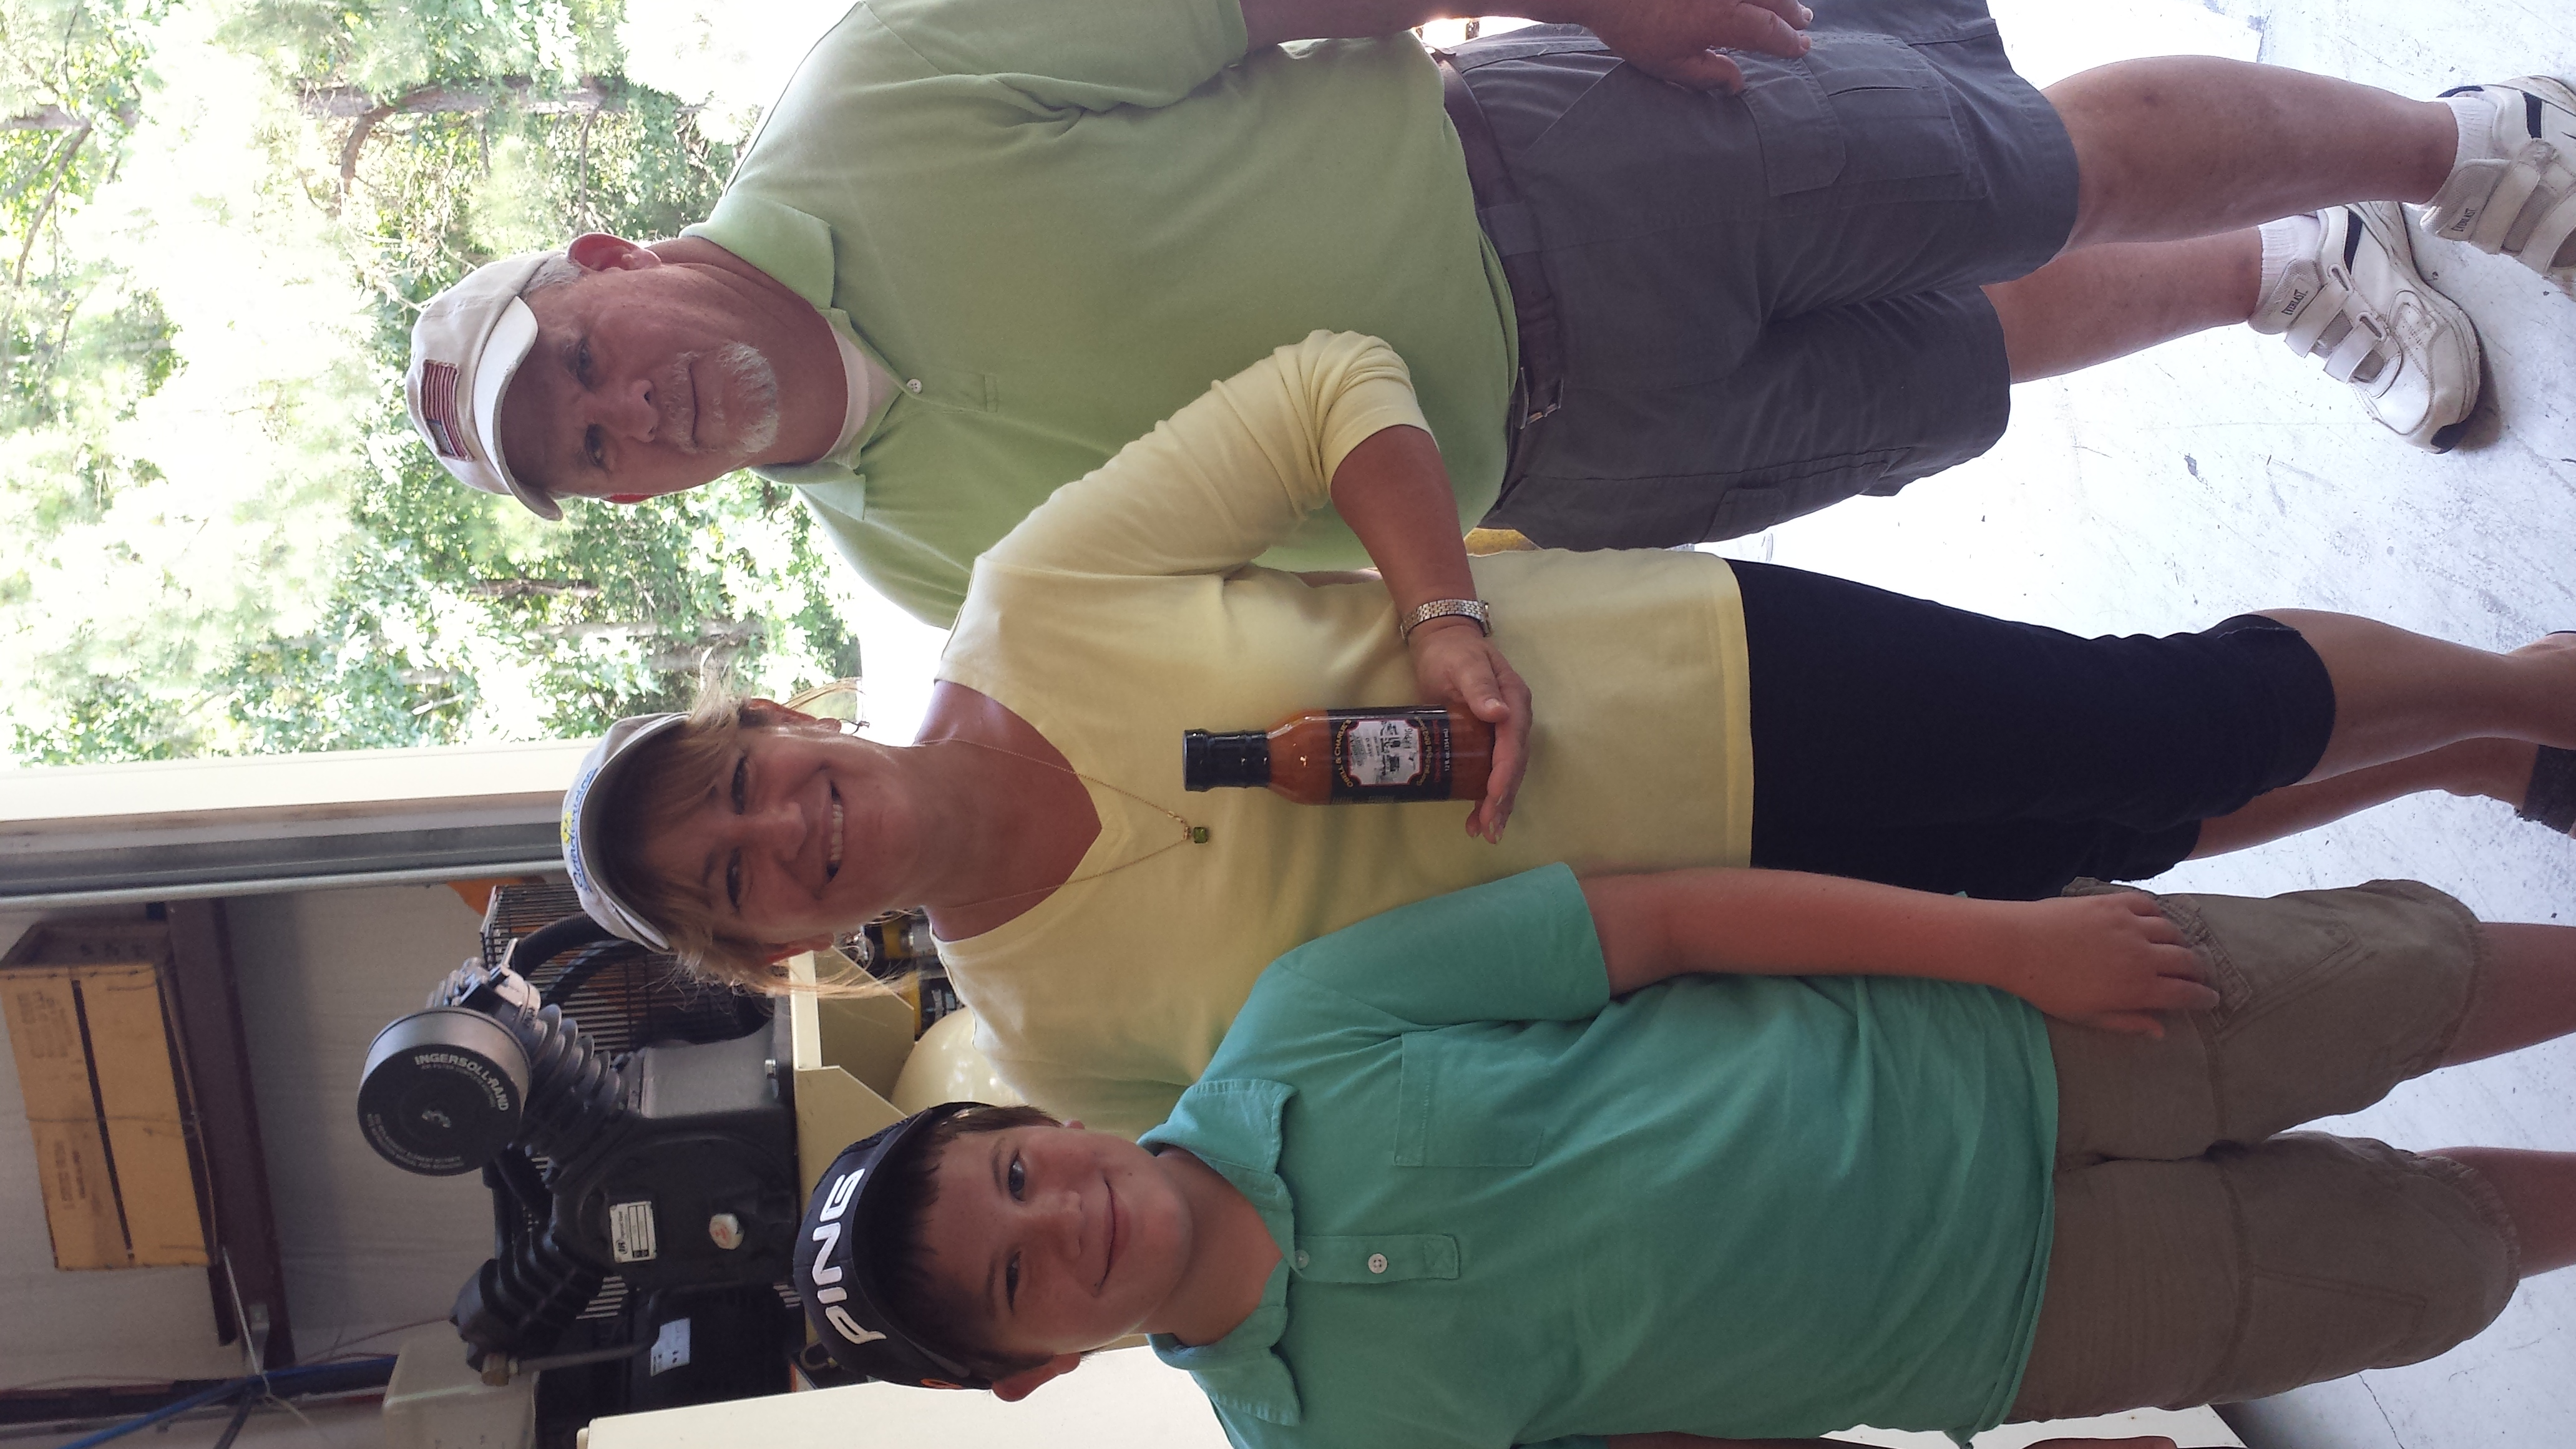 Sue Patton with Tom, her husband, & Cody, her grandson, with our first bottle of Obell & Charlie's Georgia Style BBQ Sauce hot off the line. It was an exciting day!